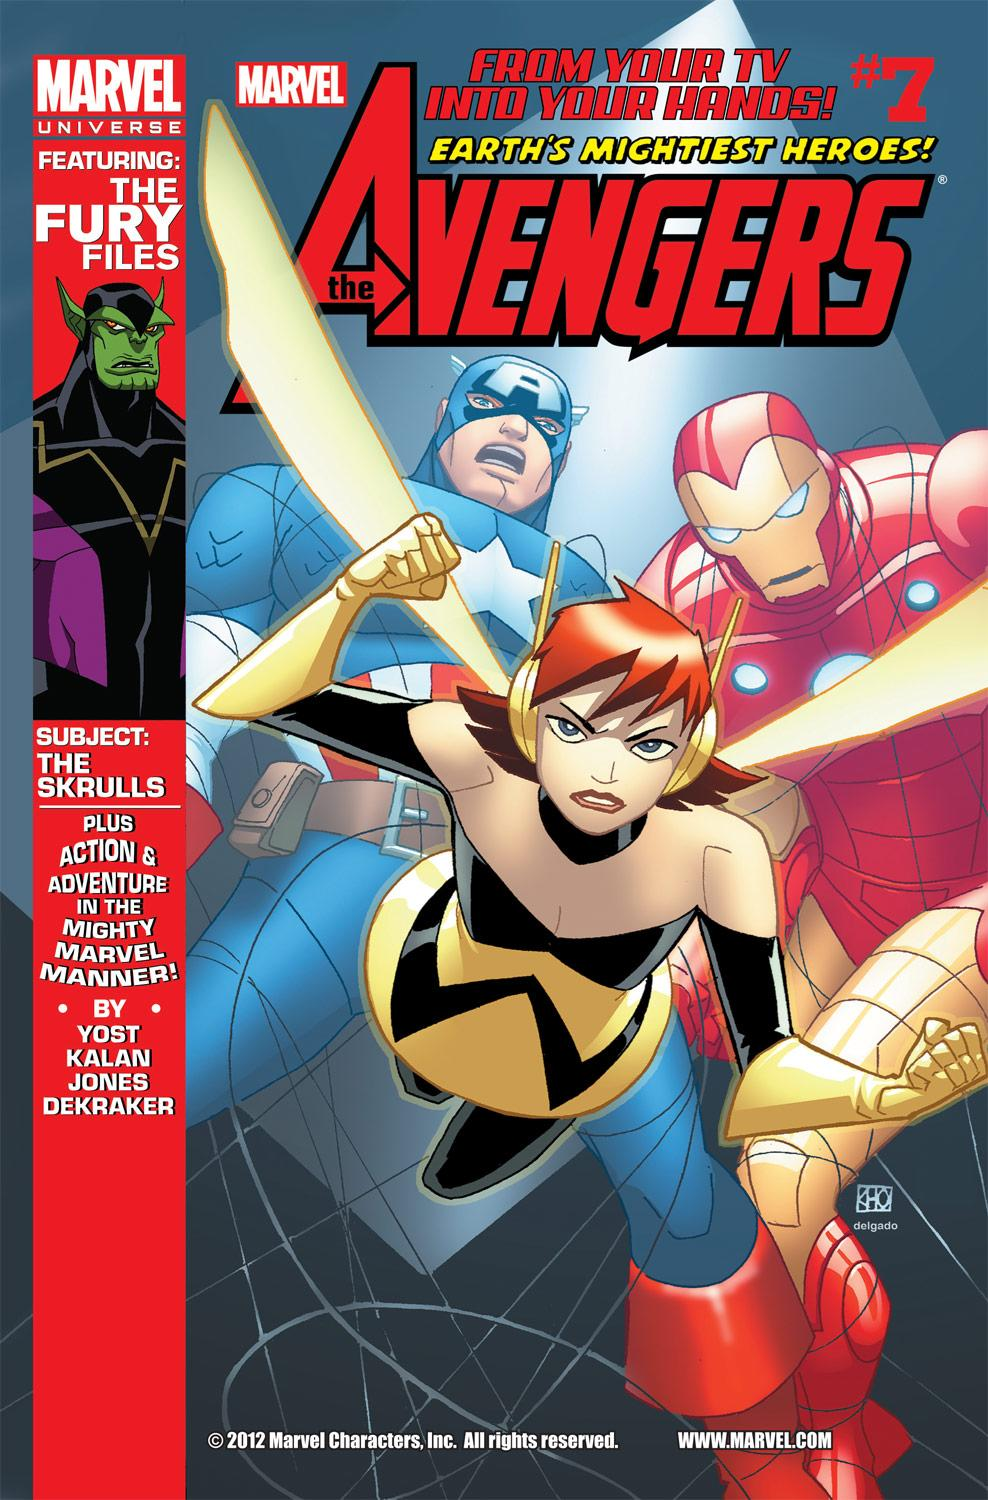 Marvel Universe Avengers: Earth's Mightiest Heroes (2012) #7